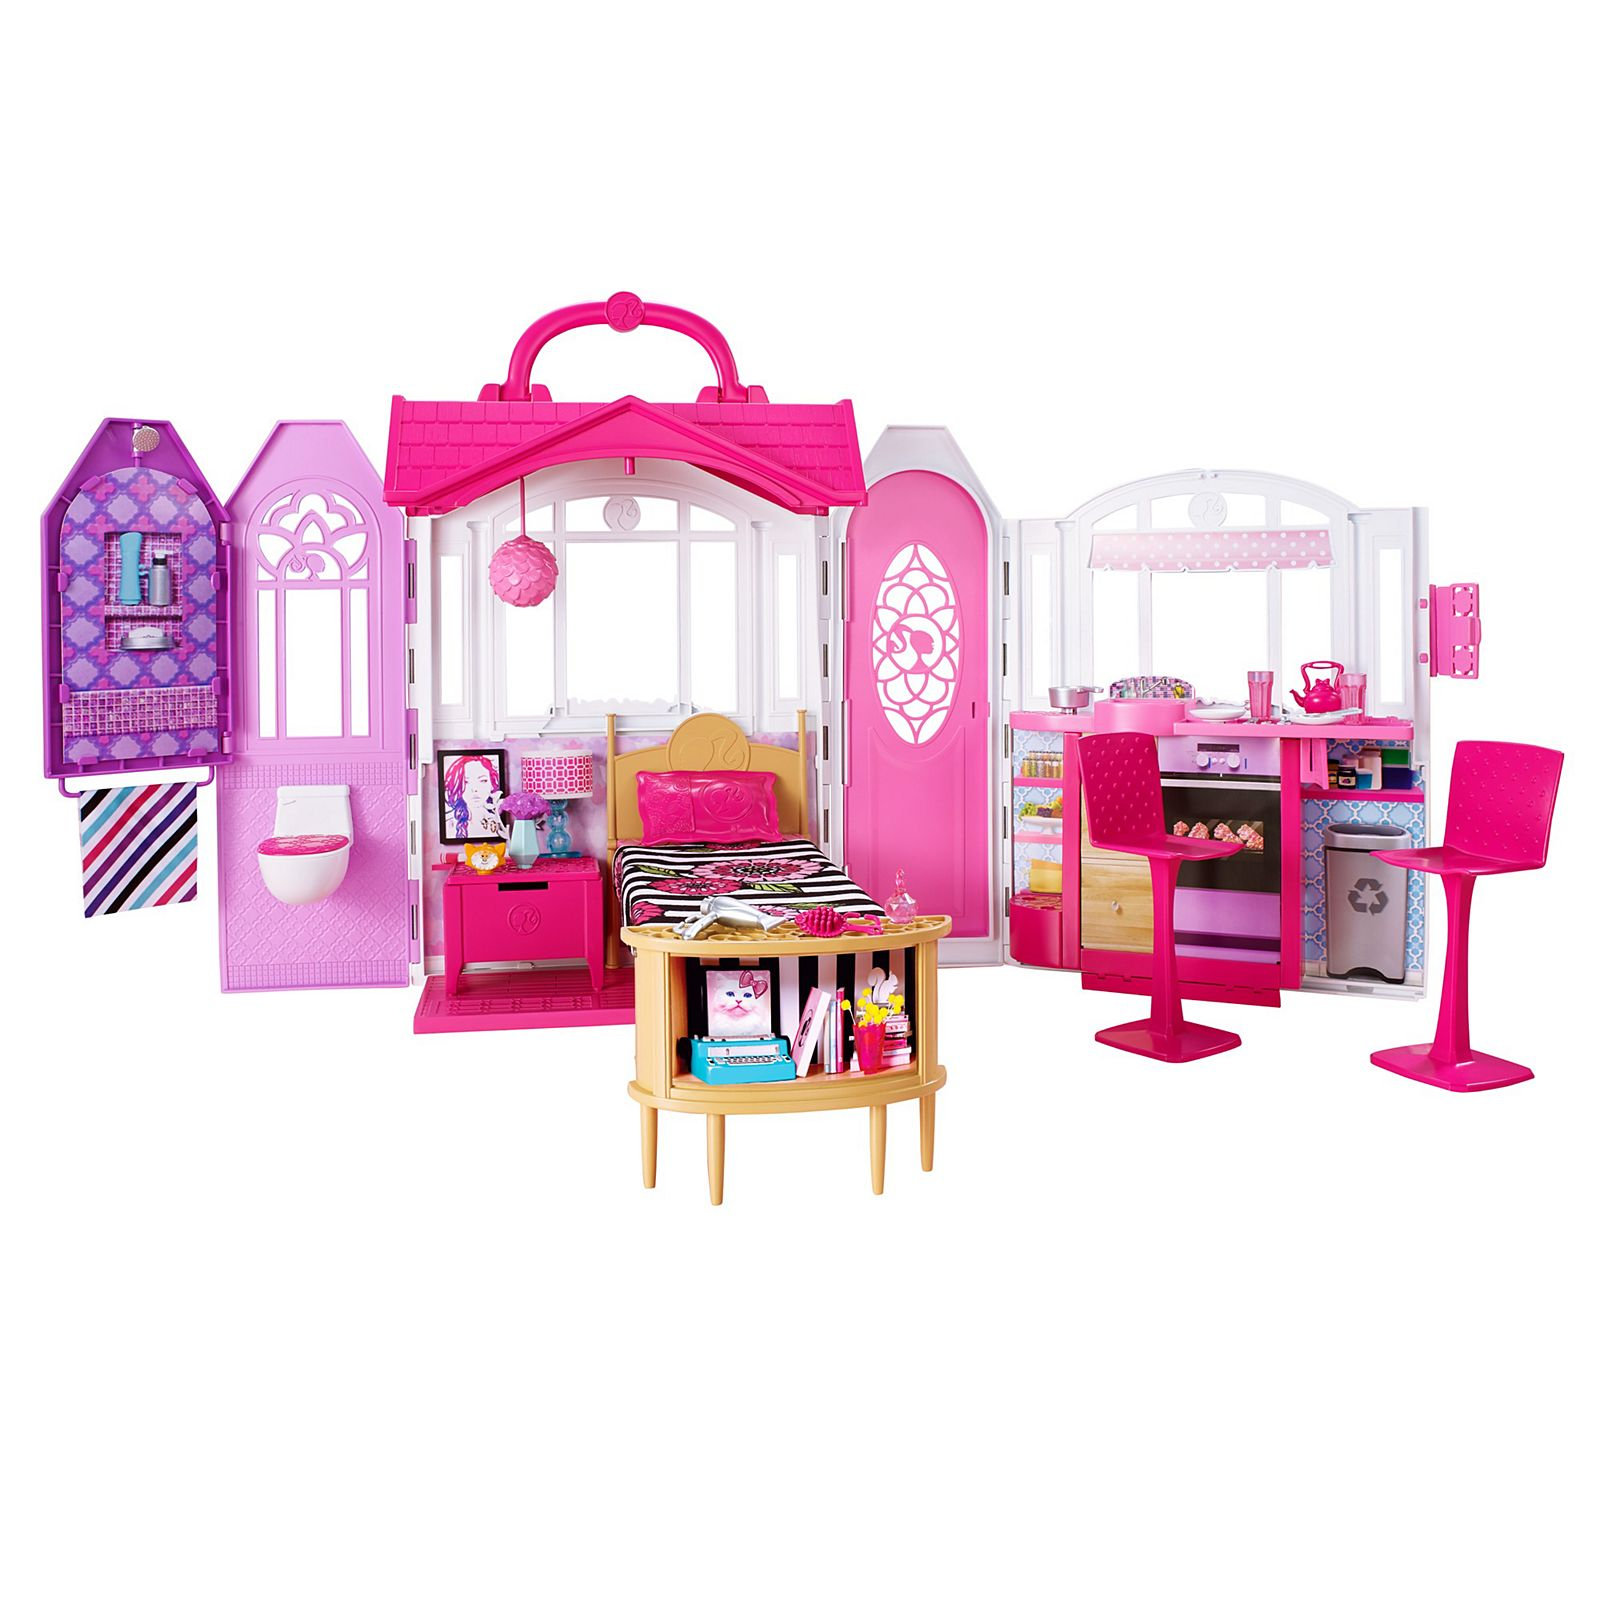 Barbie Glam Getaway House Girl Getaway Home Relax Doll Meal Stove Room Kid Child